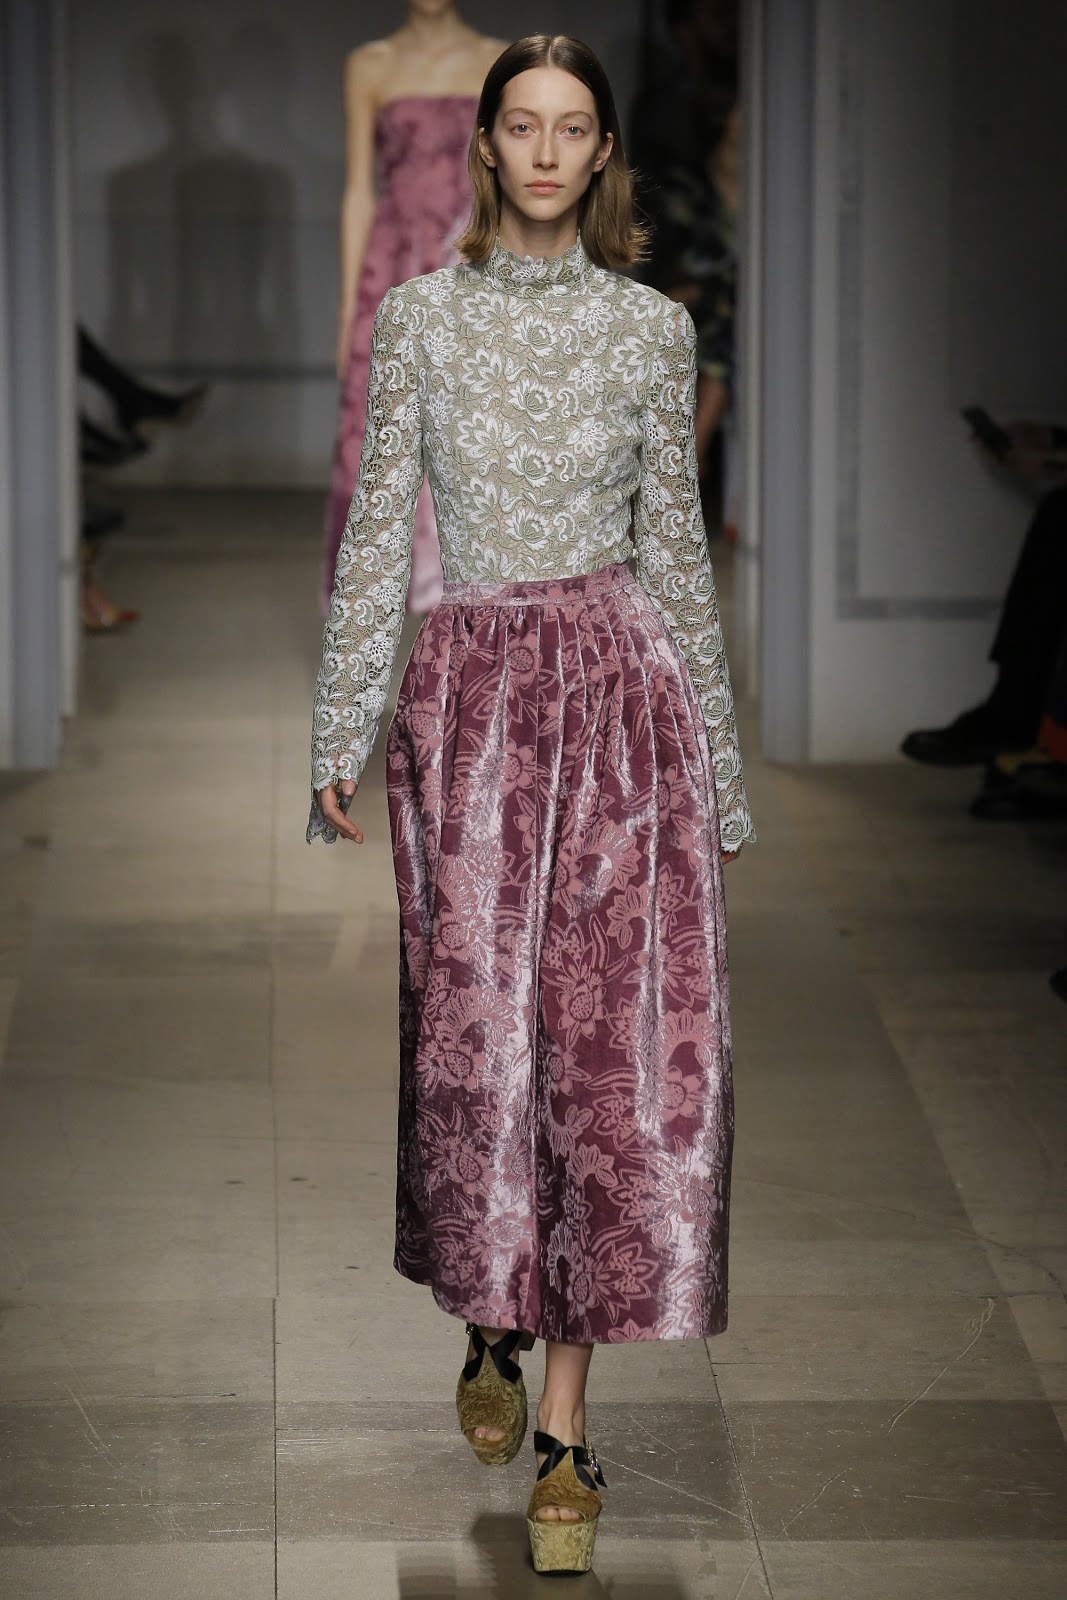 pink brocade skirt and lace blouse